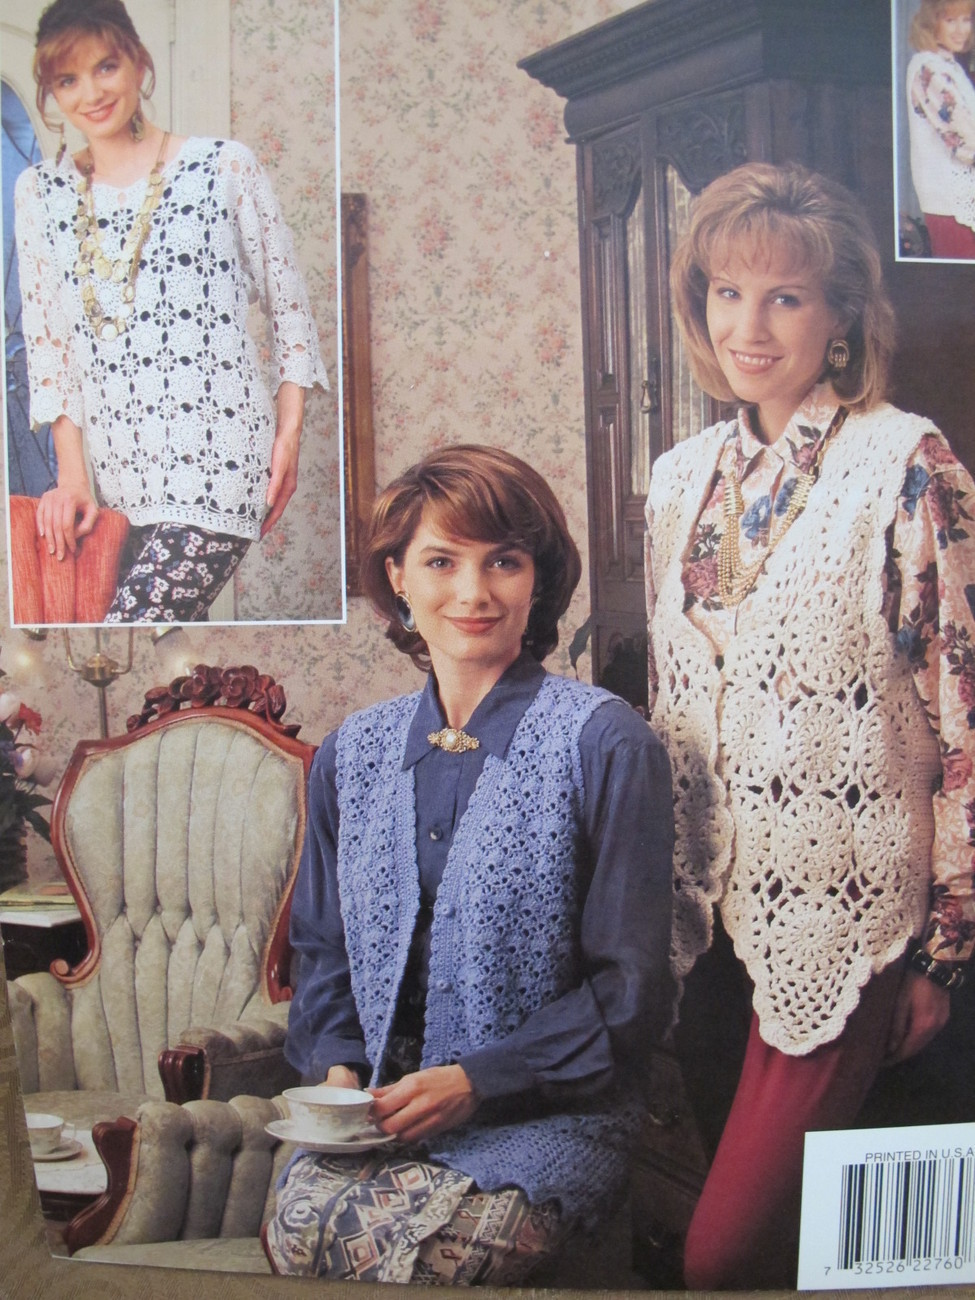 ANNIES ATTIC Crocheting Crochet Patterns LADIES Lacy Lace Vests and Sweaters